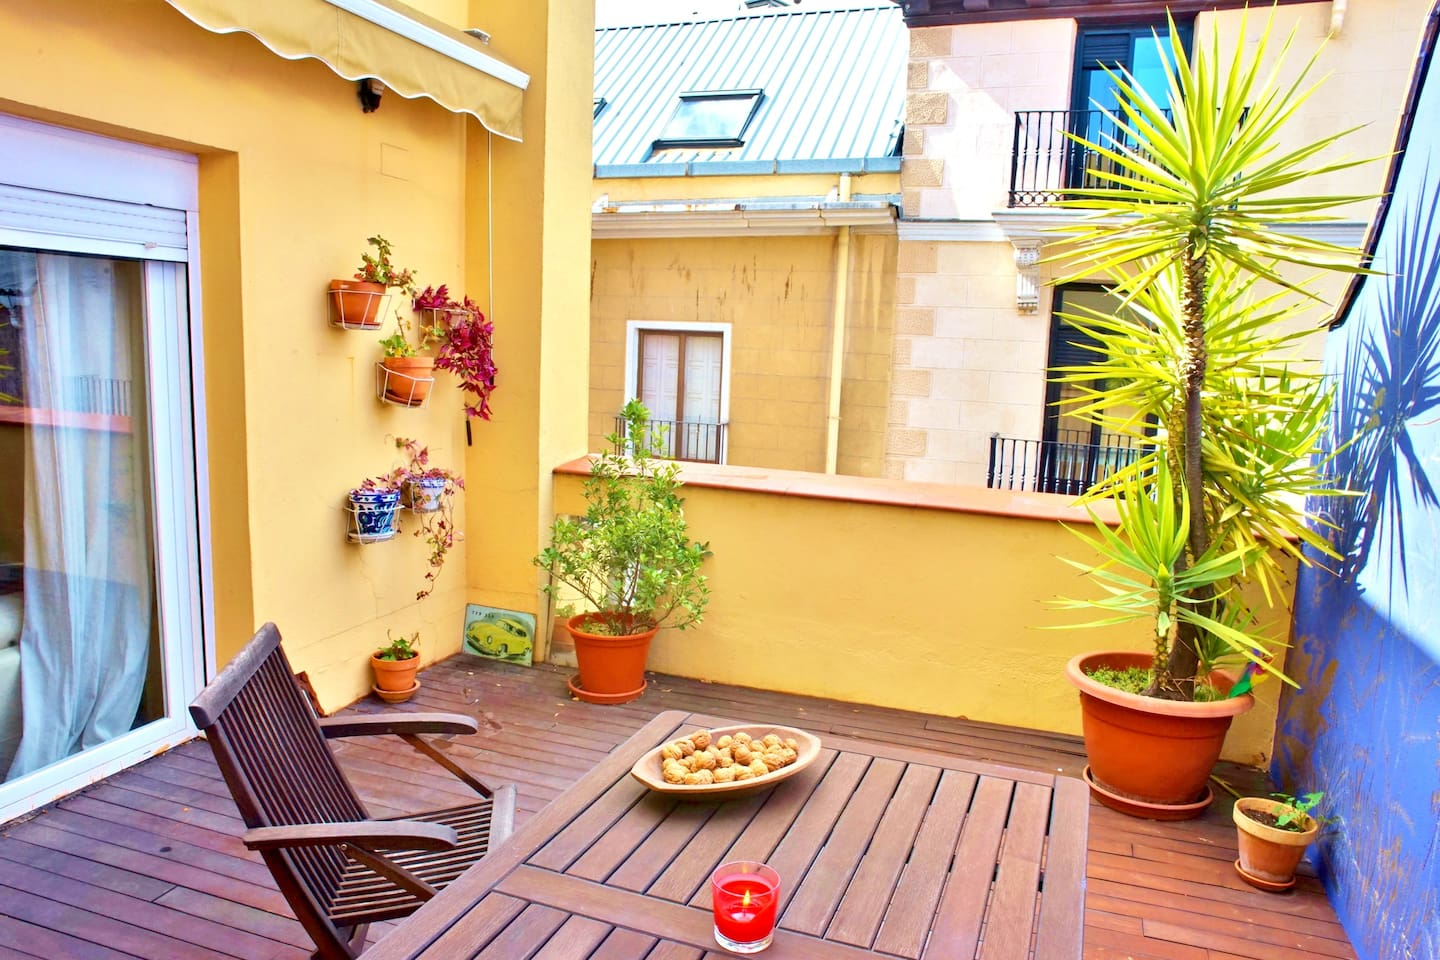 20m2 terrace. Access from the living room.